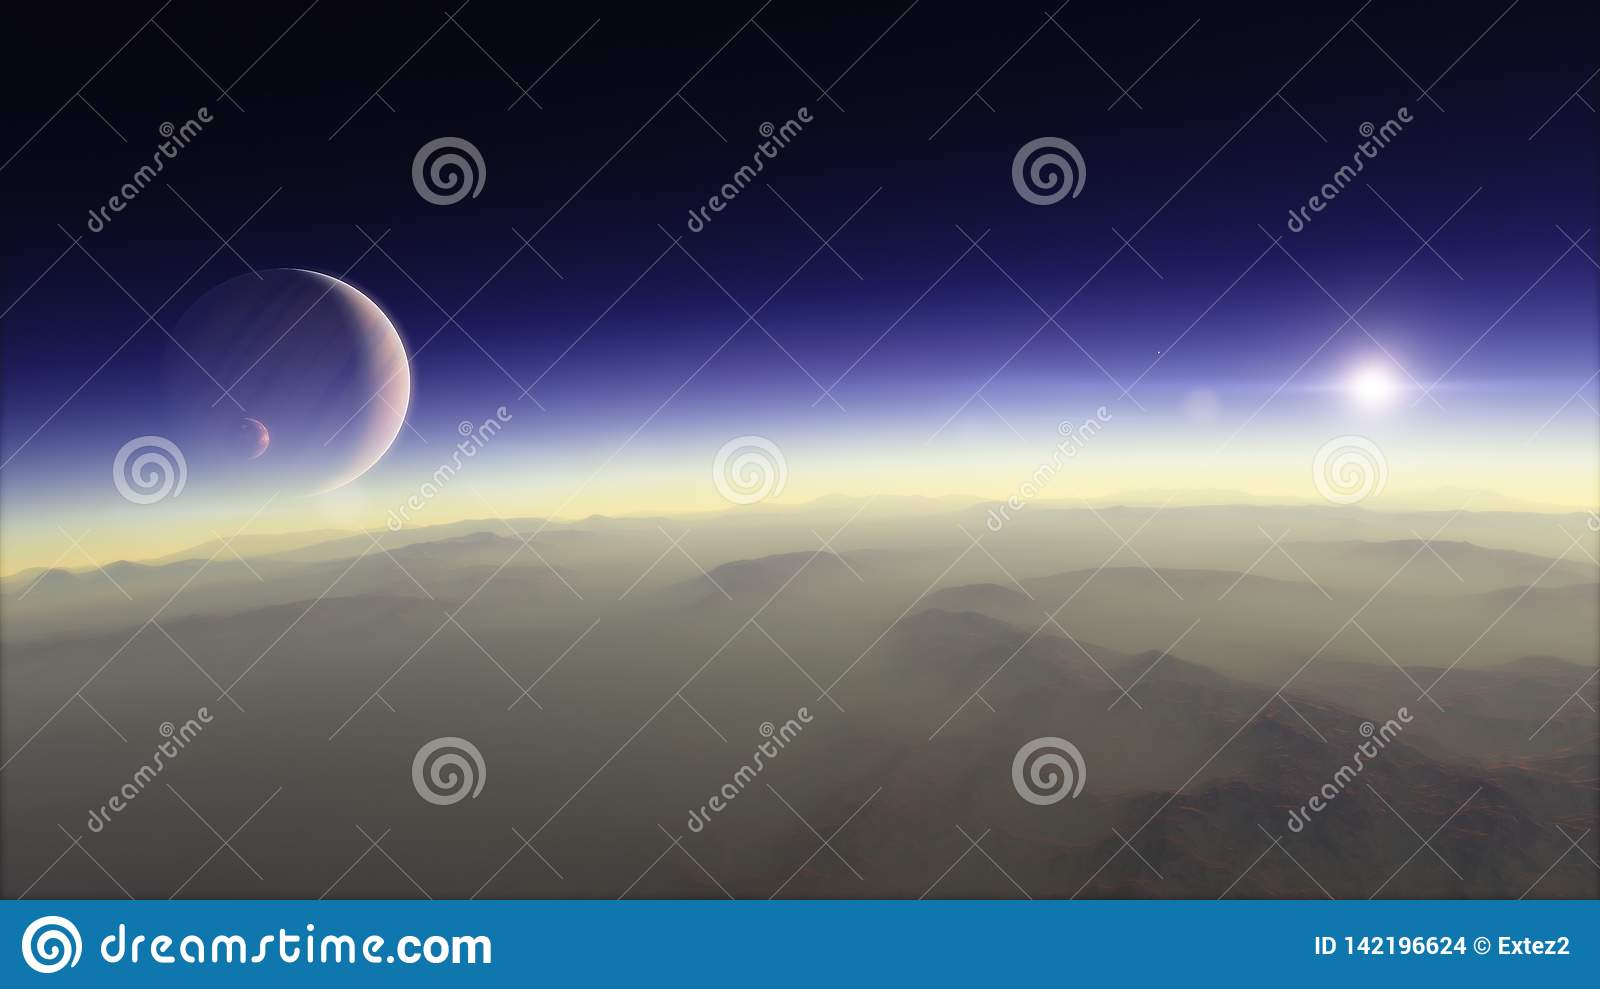 Planet In The Space Colorful Art Solar System Gradient